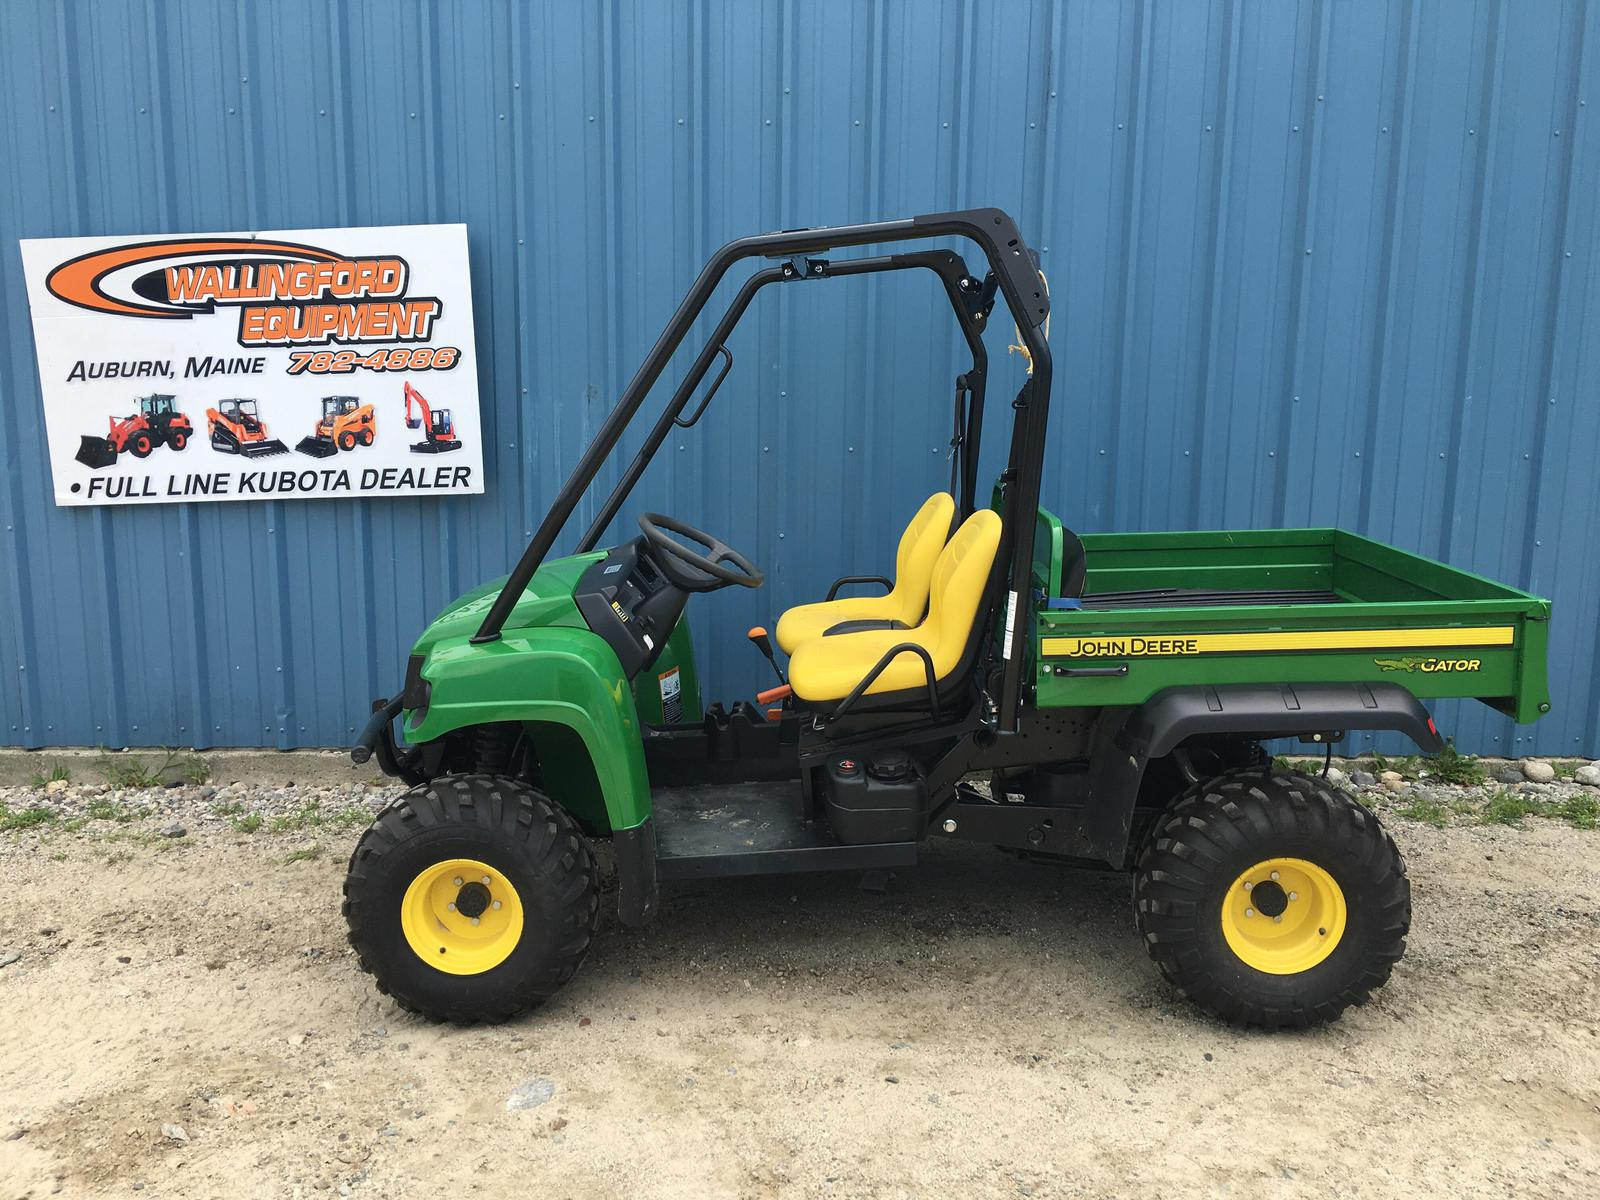 John Deere Gator >> 2013 John Deere Gator Hpx 4x4 For Sale In Auburn Me Wallingford